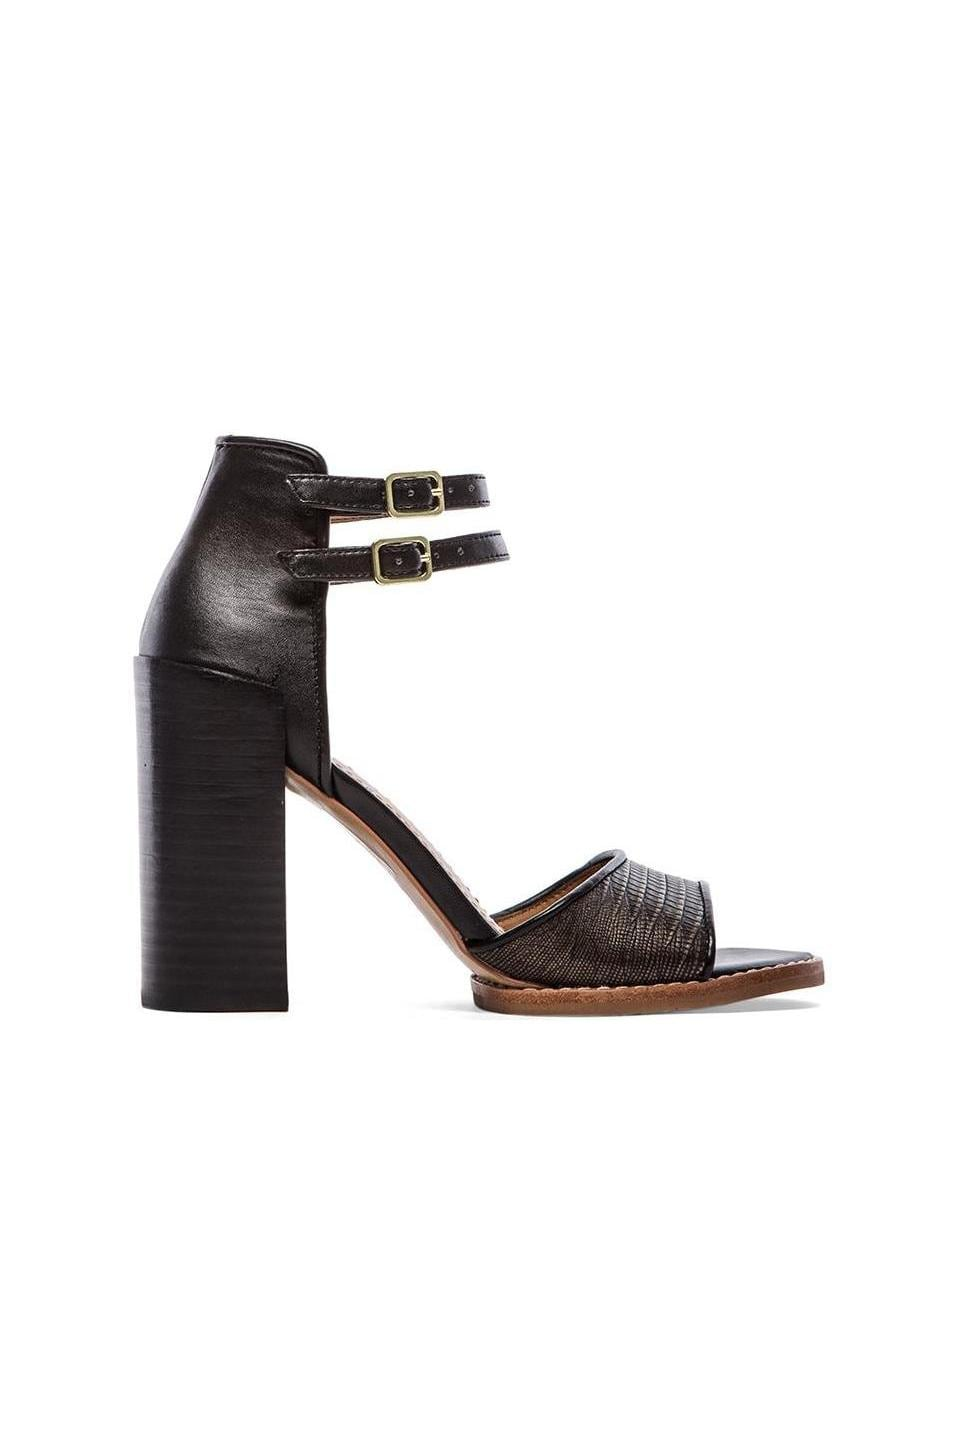 Dolce Vita Marynn Sandal in Bronze & Black